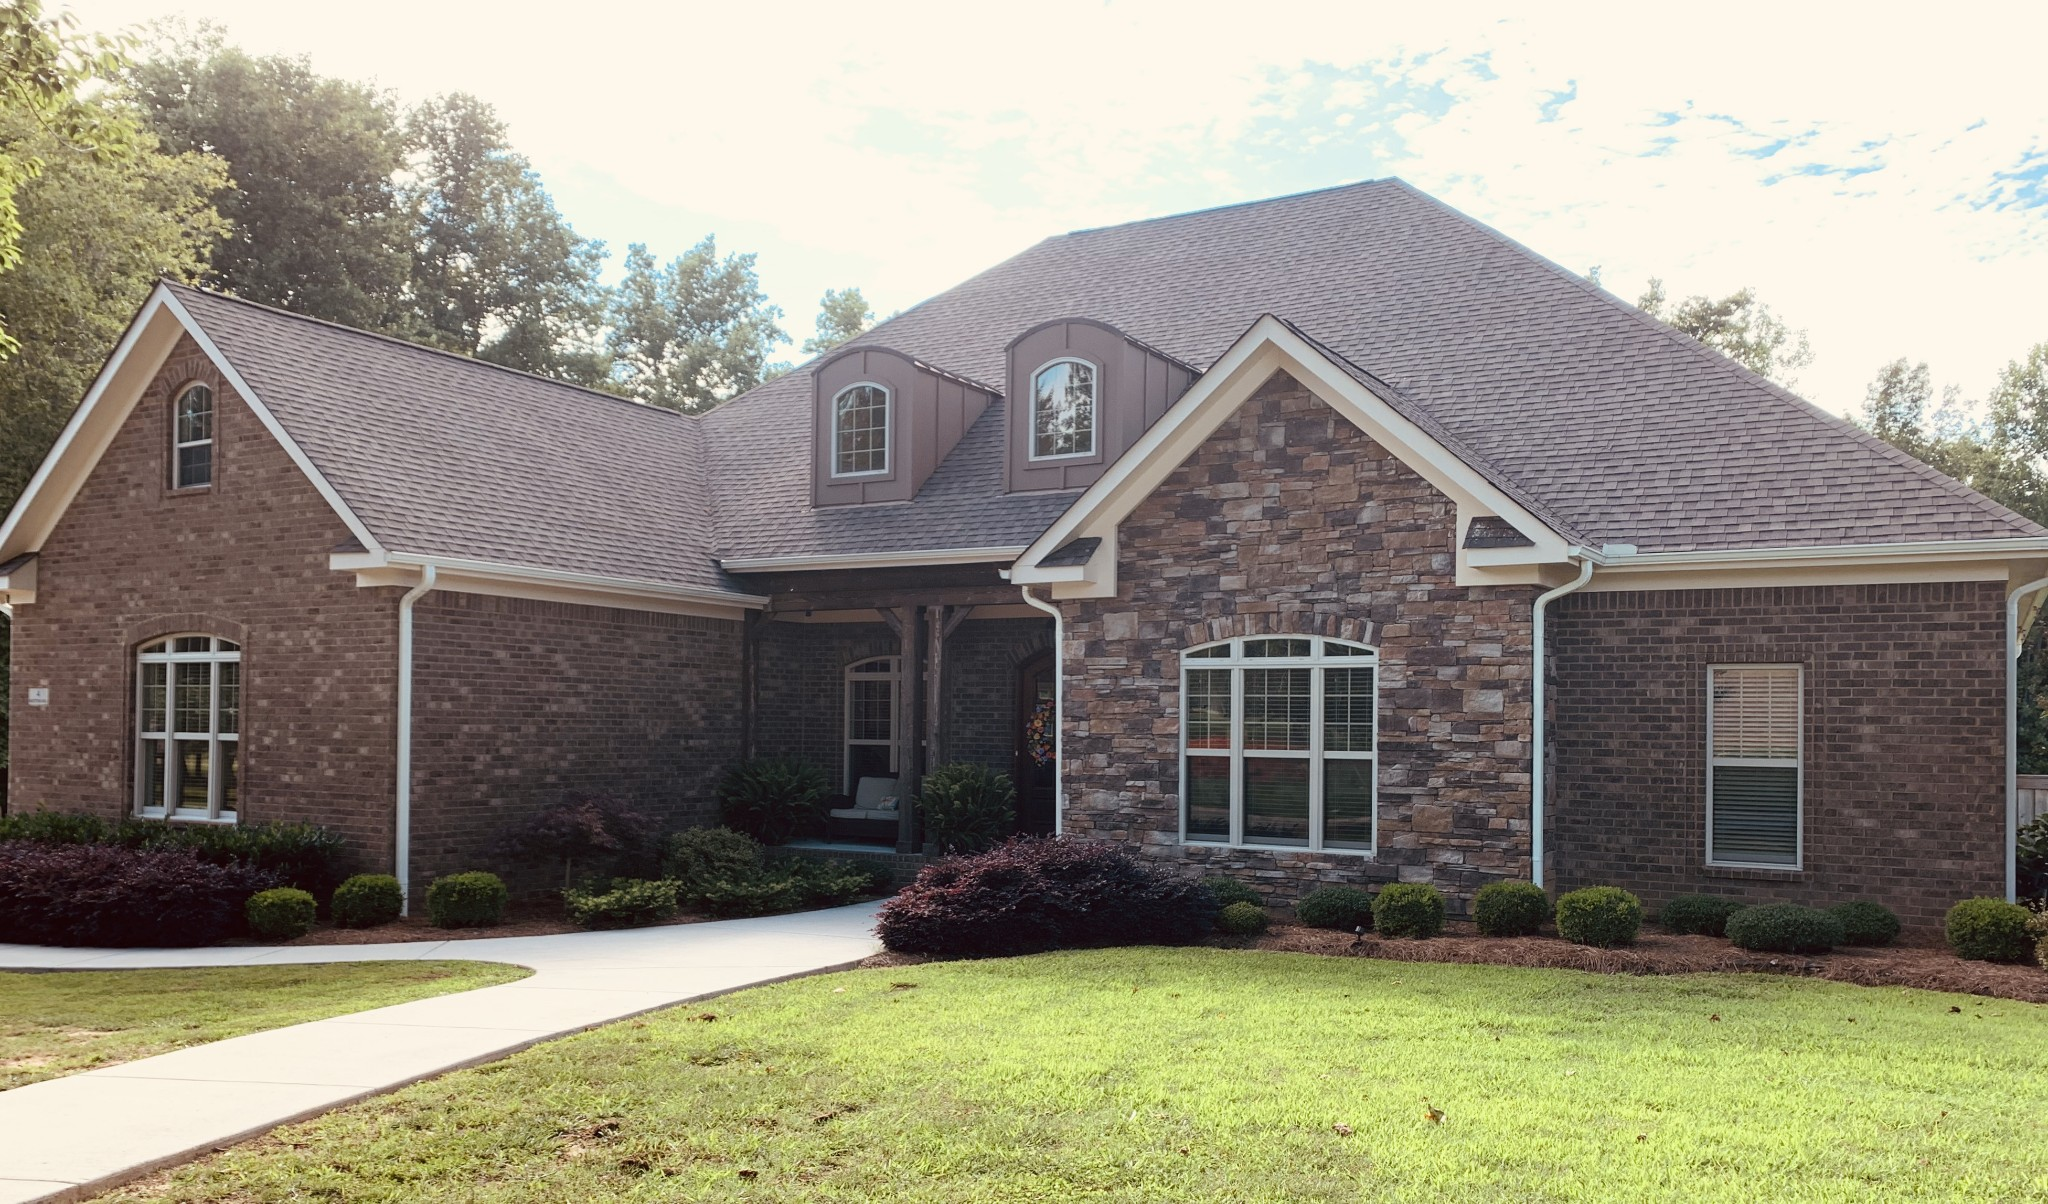 4 Knotting Hill Dr Property Photo - Fayetteville, TN real estate listing